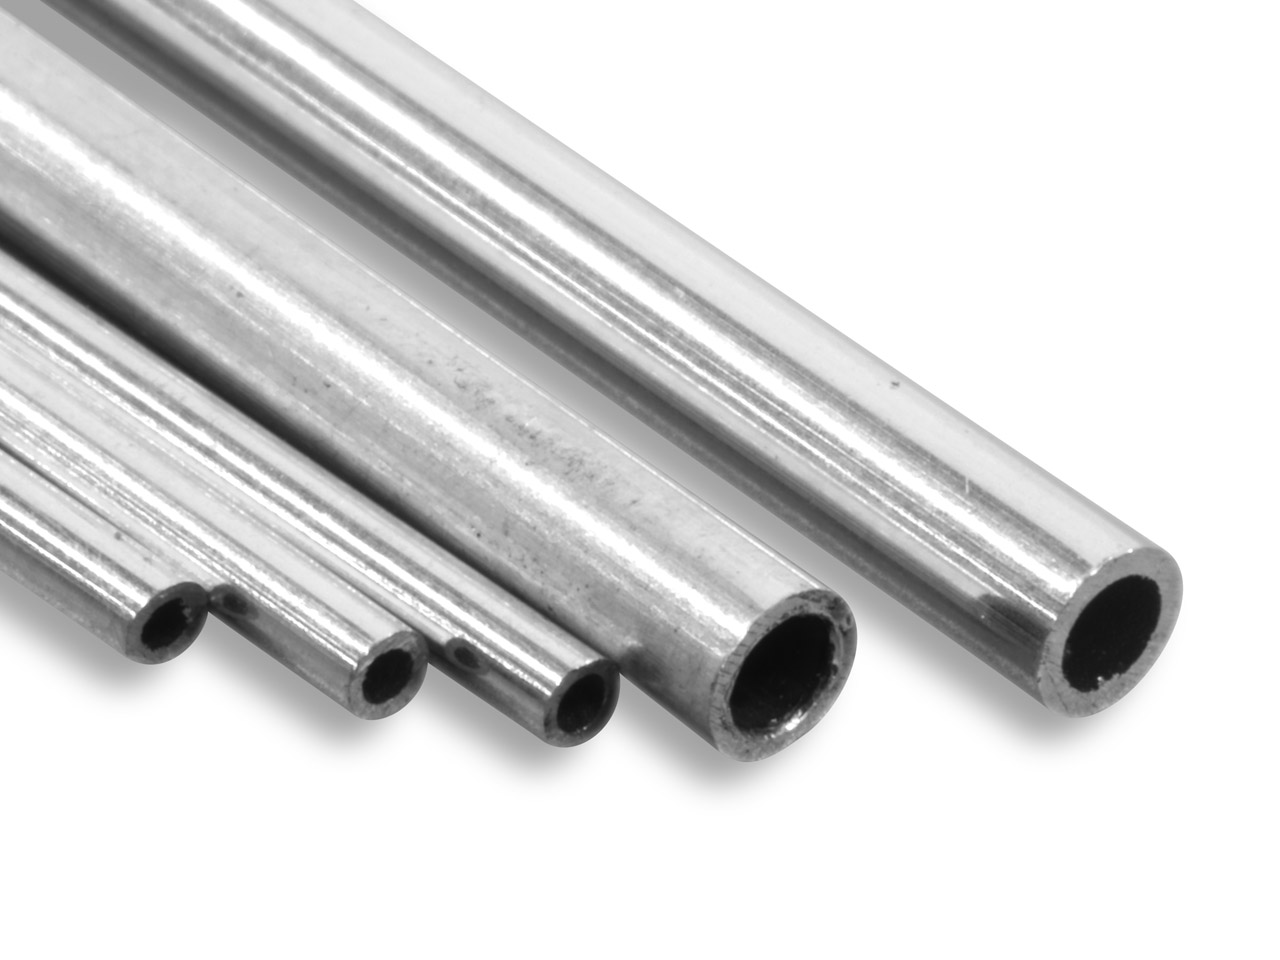 18ct Medium White Tube, Ref 2,     Outside Diameter 4.5mm,            Inside Diameter 3.5mm, 0.5mm Wall  Thickness